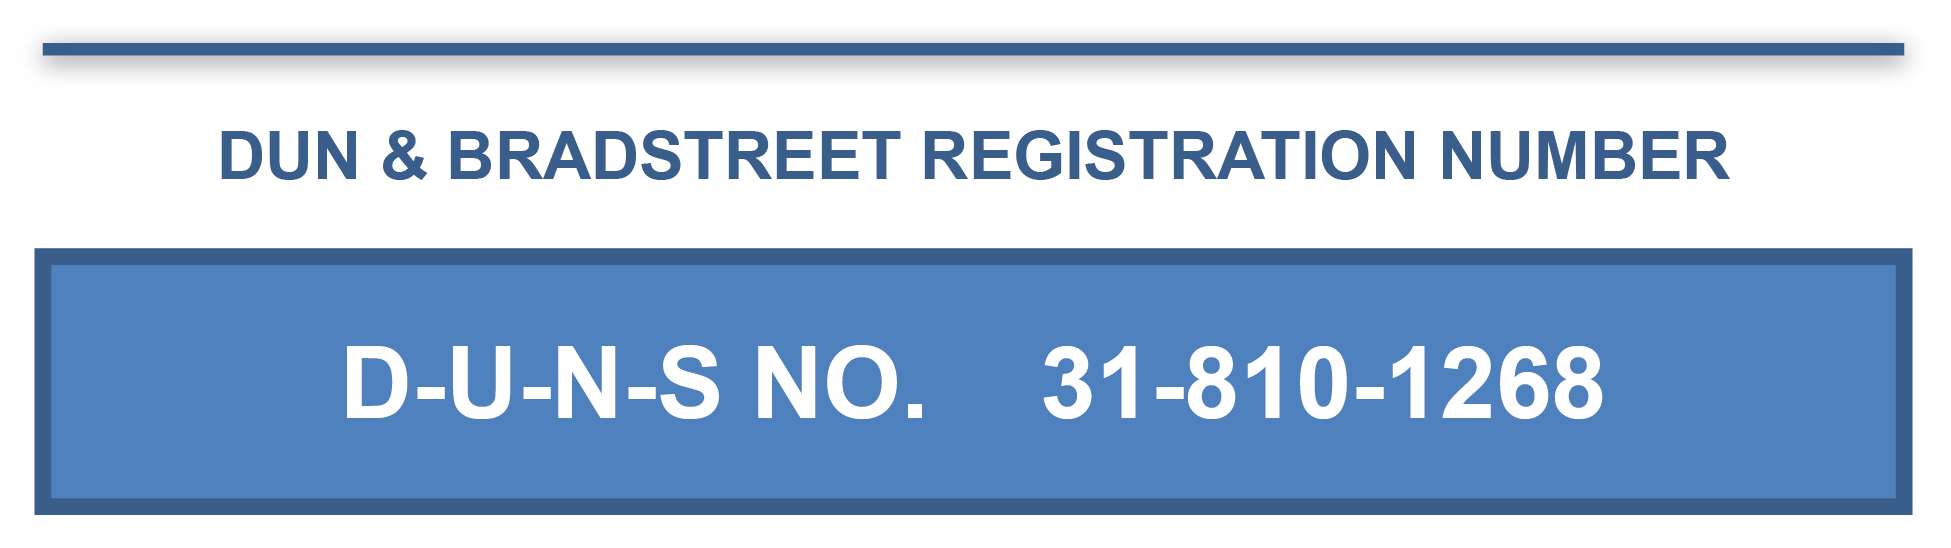 DUN & BRADSTREET REGISTRATION NUMBER